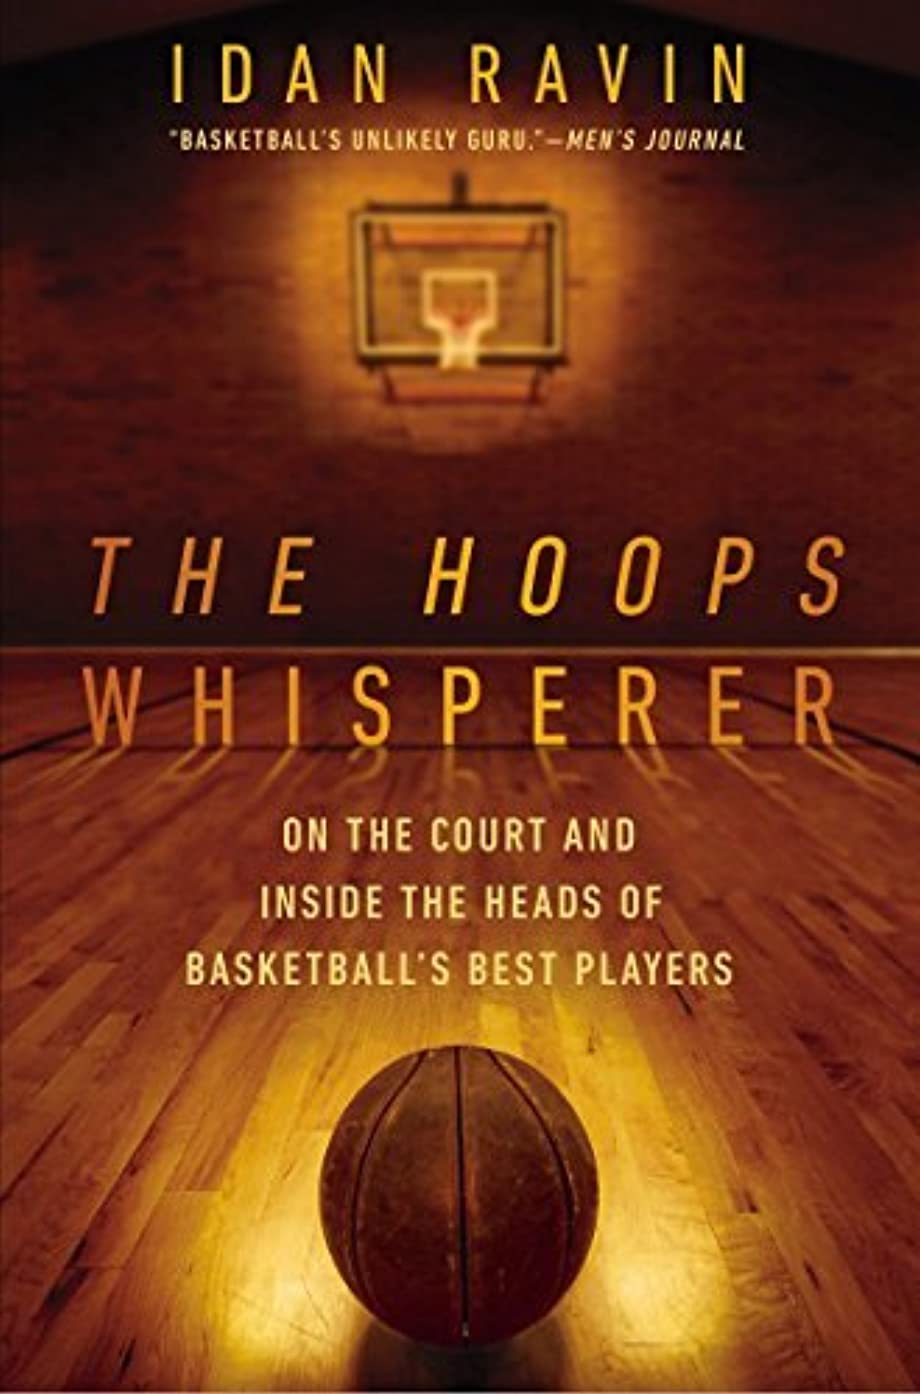 Hoops Whisperer, The : On the Court and Inside the Heads of Basketball's Best Players by Idan Ravin (2015-05-21)